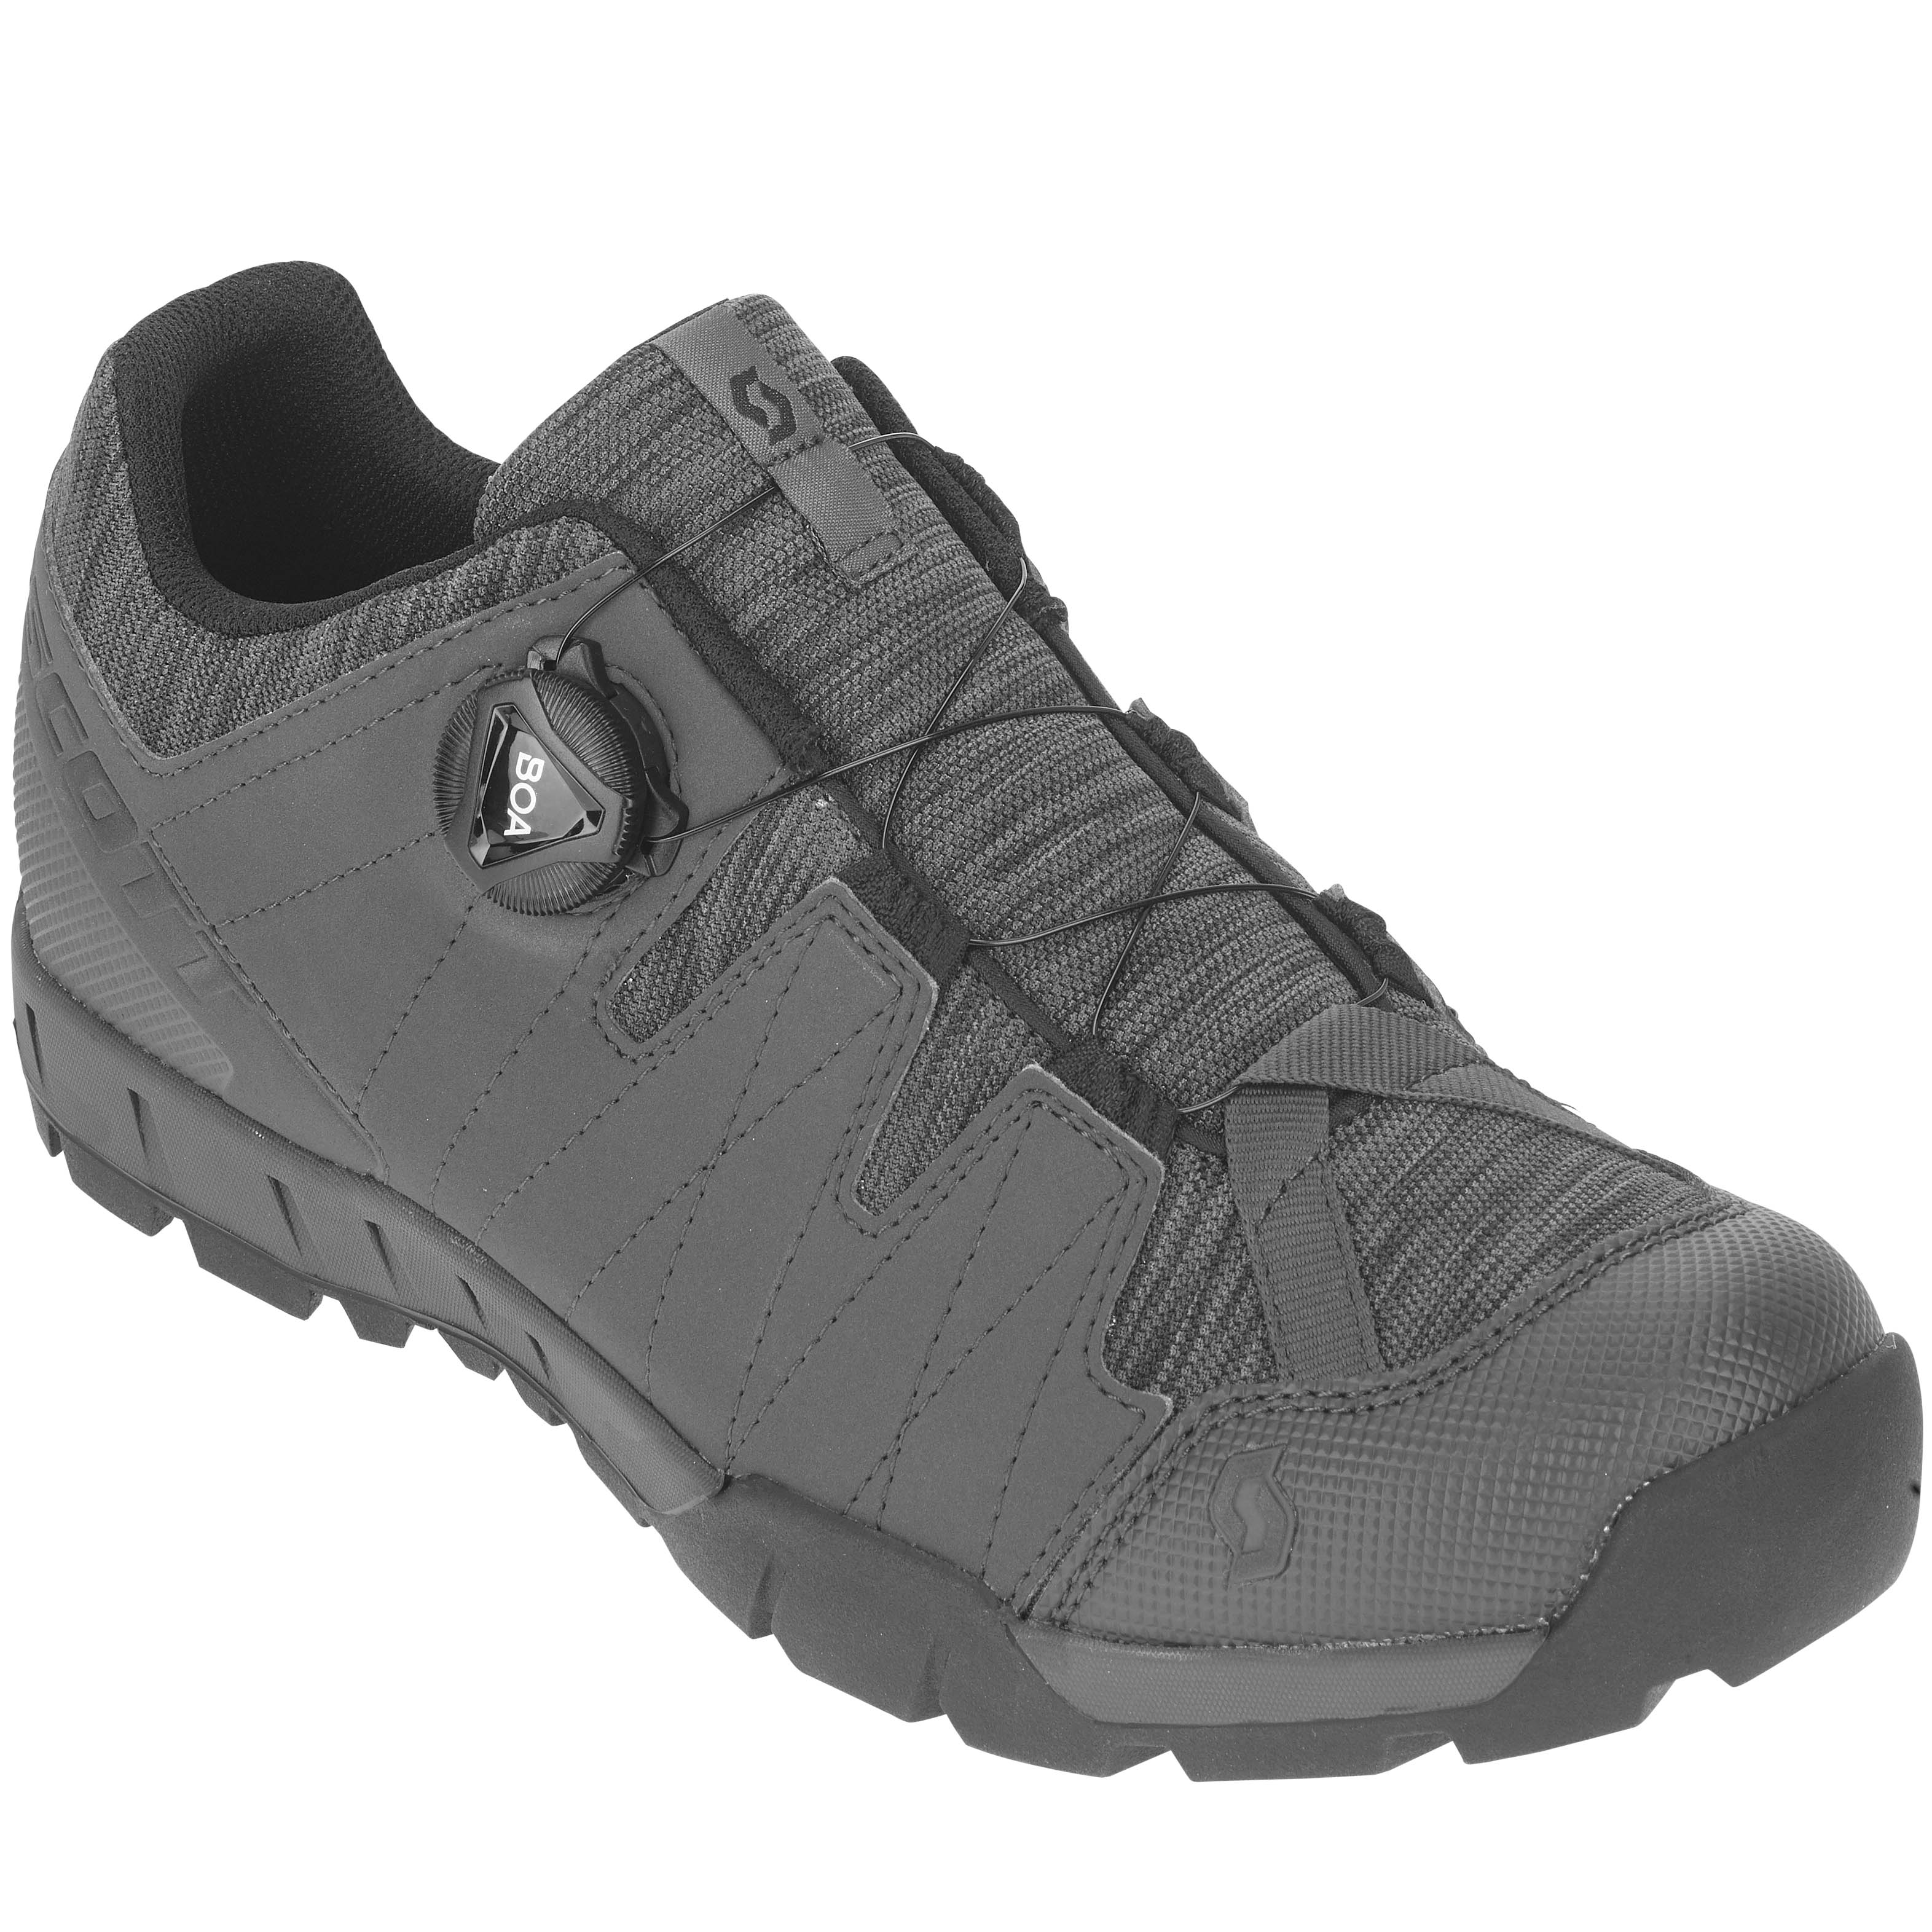 SCOTT Sport Trail Boa Shoe